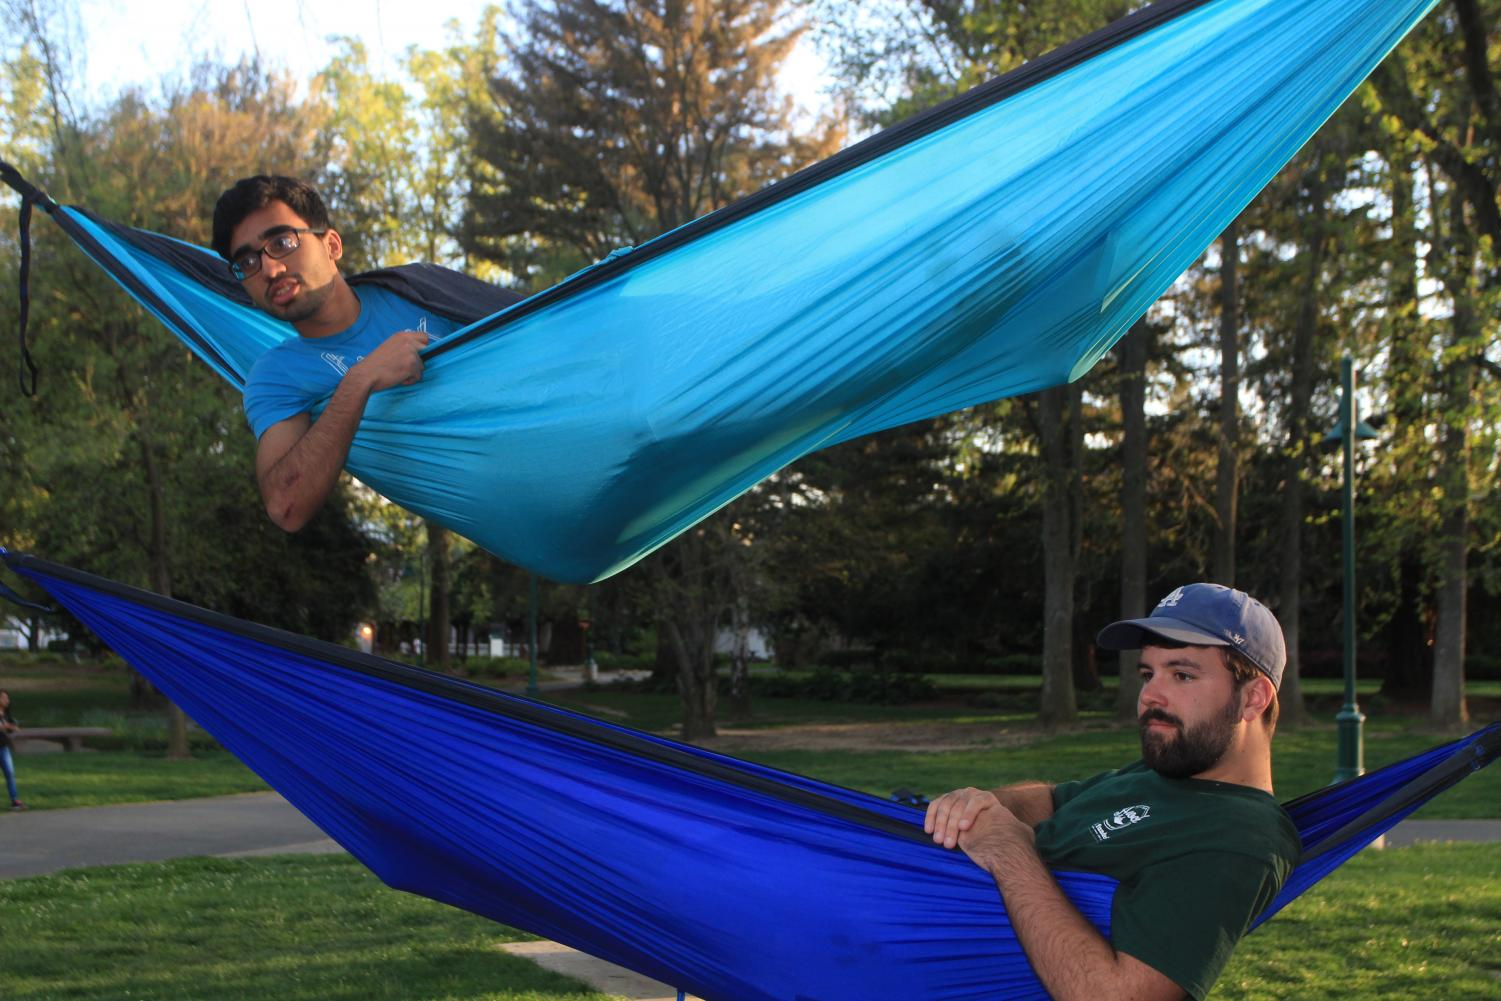 Computer science major Armaiz Adenwala, top, and business finance major and Hammock Club President Trent Simonson, bottom, engage with other members of Hammock Club at a Monday evening meeting on April 2, 2018 in grouping of trees between Riverfront Center, Lassen Hall and the bus stop. Hammock Club meetings are held Monday and Thursday evenings, and are open to all students.